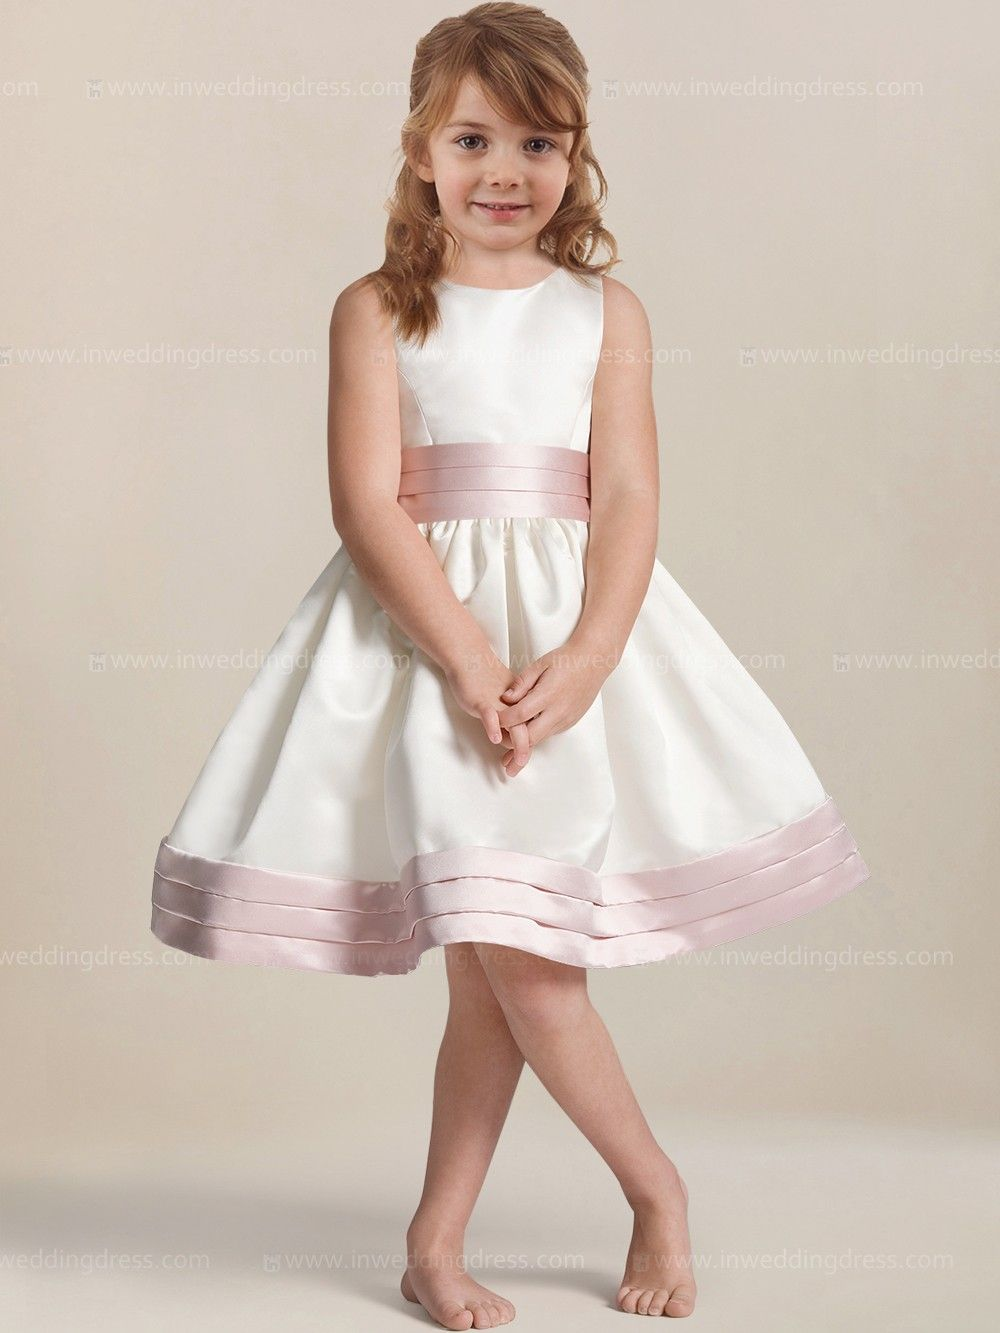 Satin knee length flower girl dress fl057 cheapest flowers flower buy affordable flower girl dresses here you will find the dress you are looking for izmirmasajfo